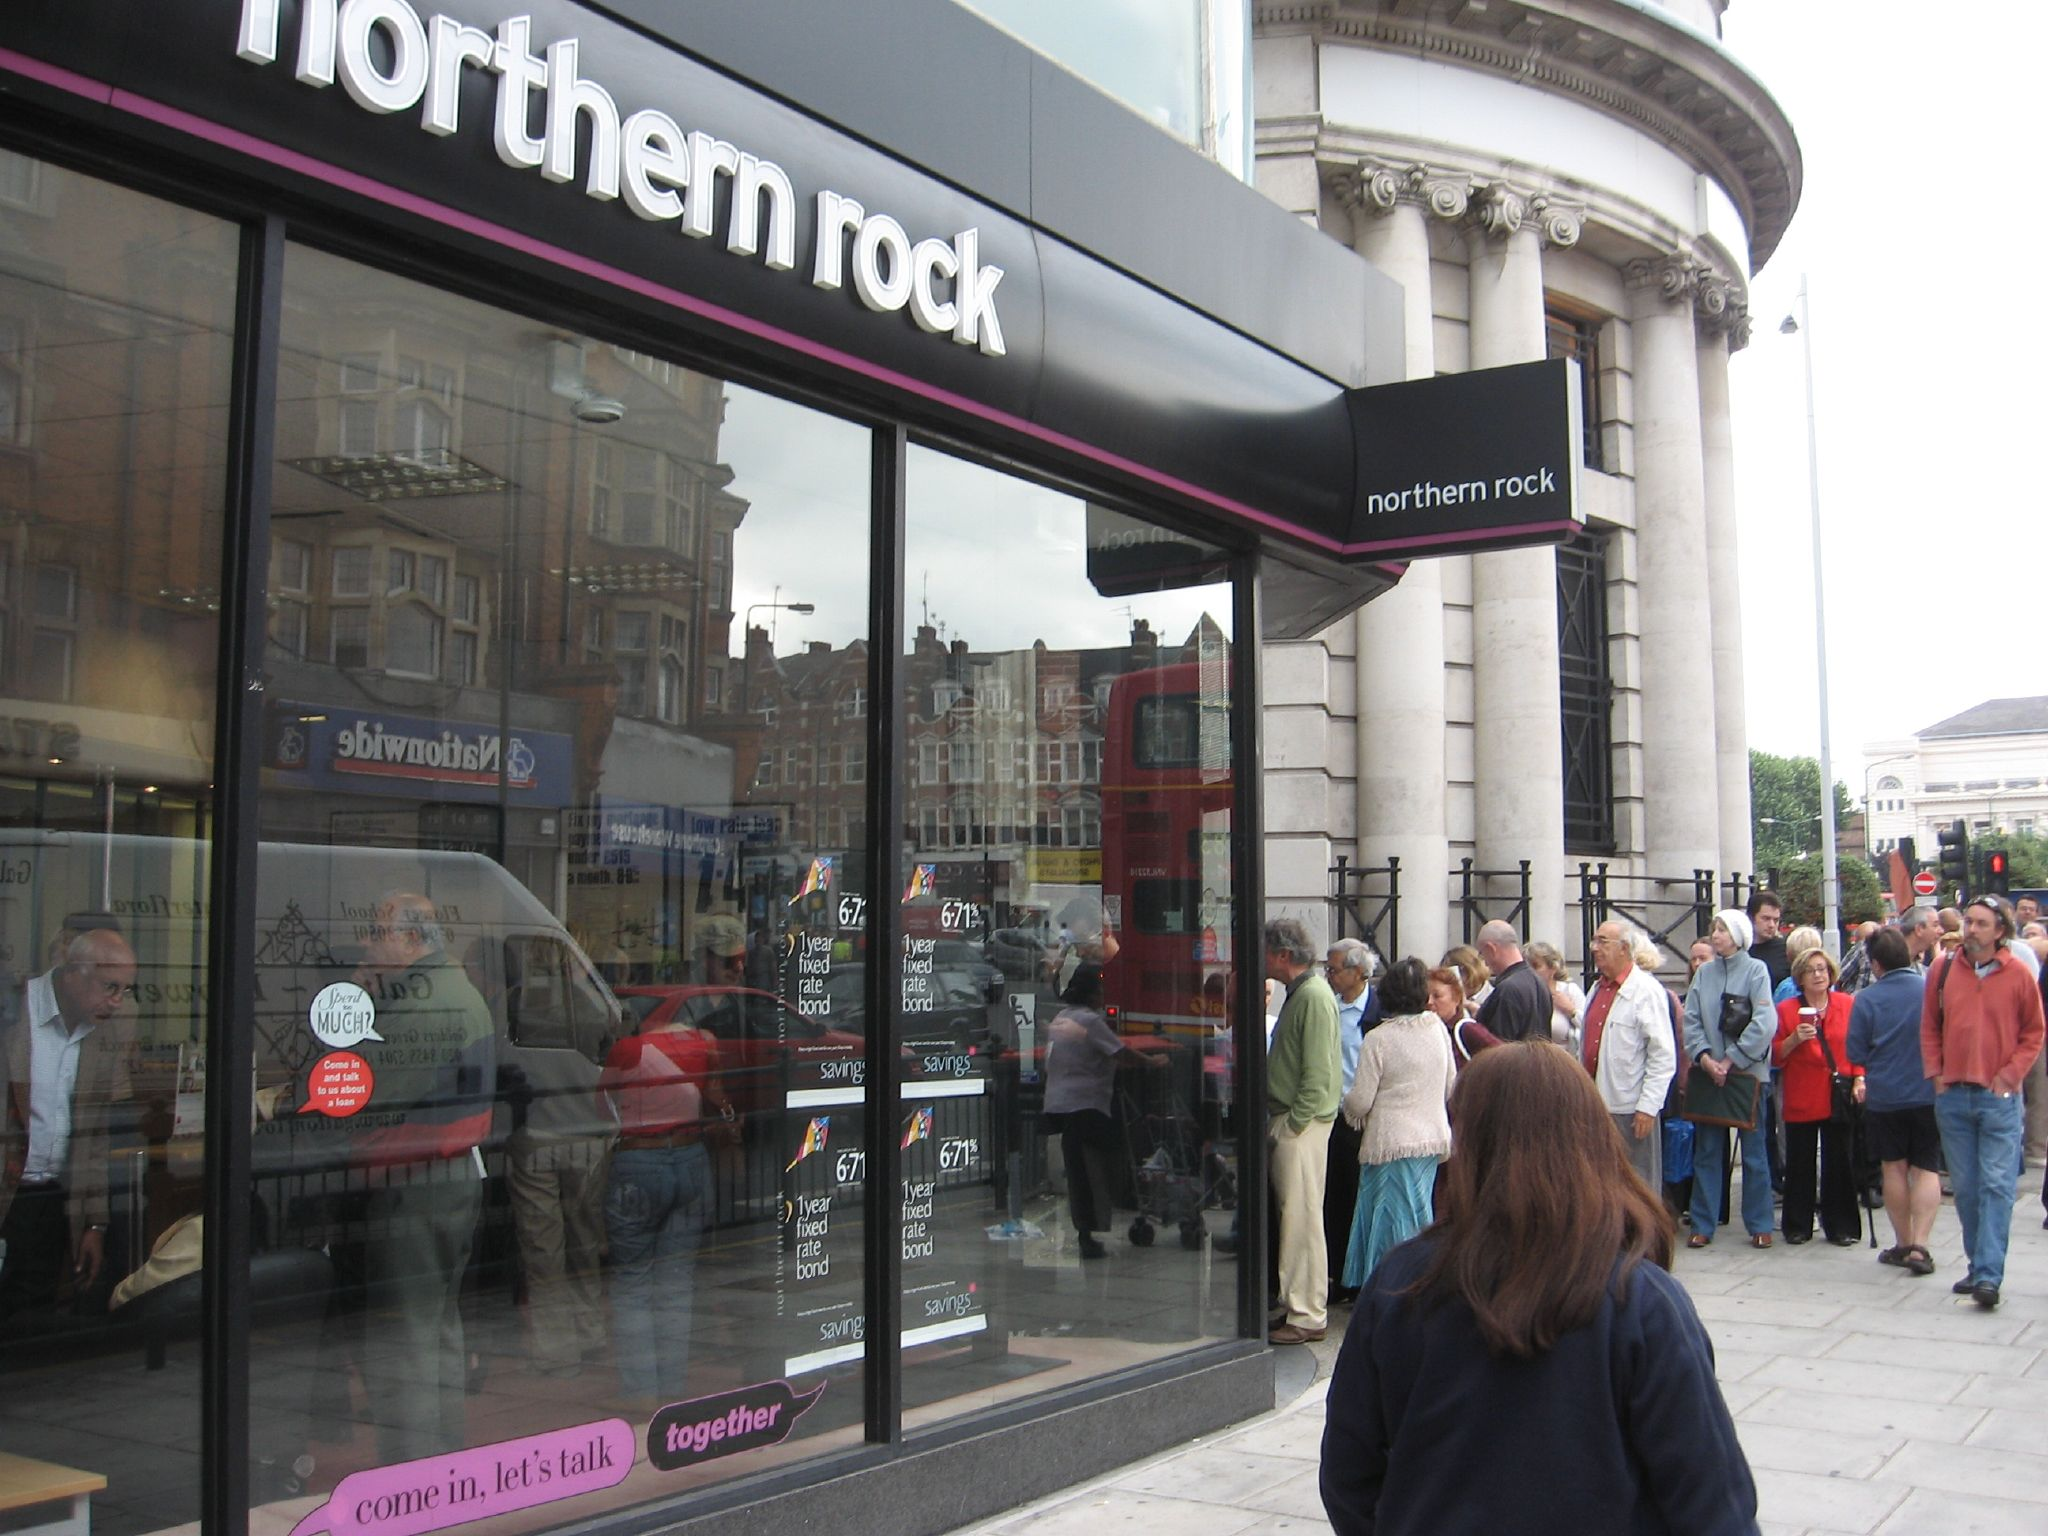 https://upload.wikimedia.org/wikipedia/commons/5/52/Northern_Rock_Customers%2C_September_14%2C_2007.jpg